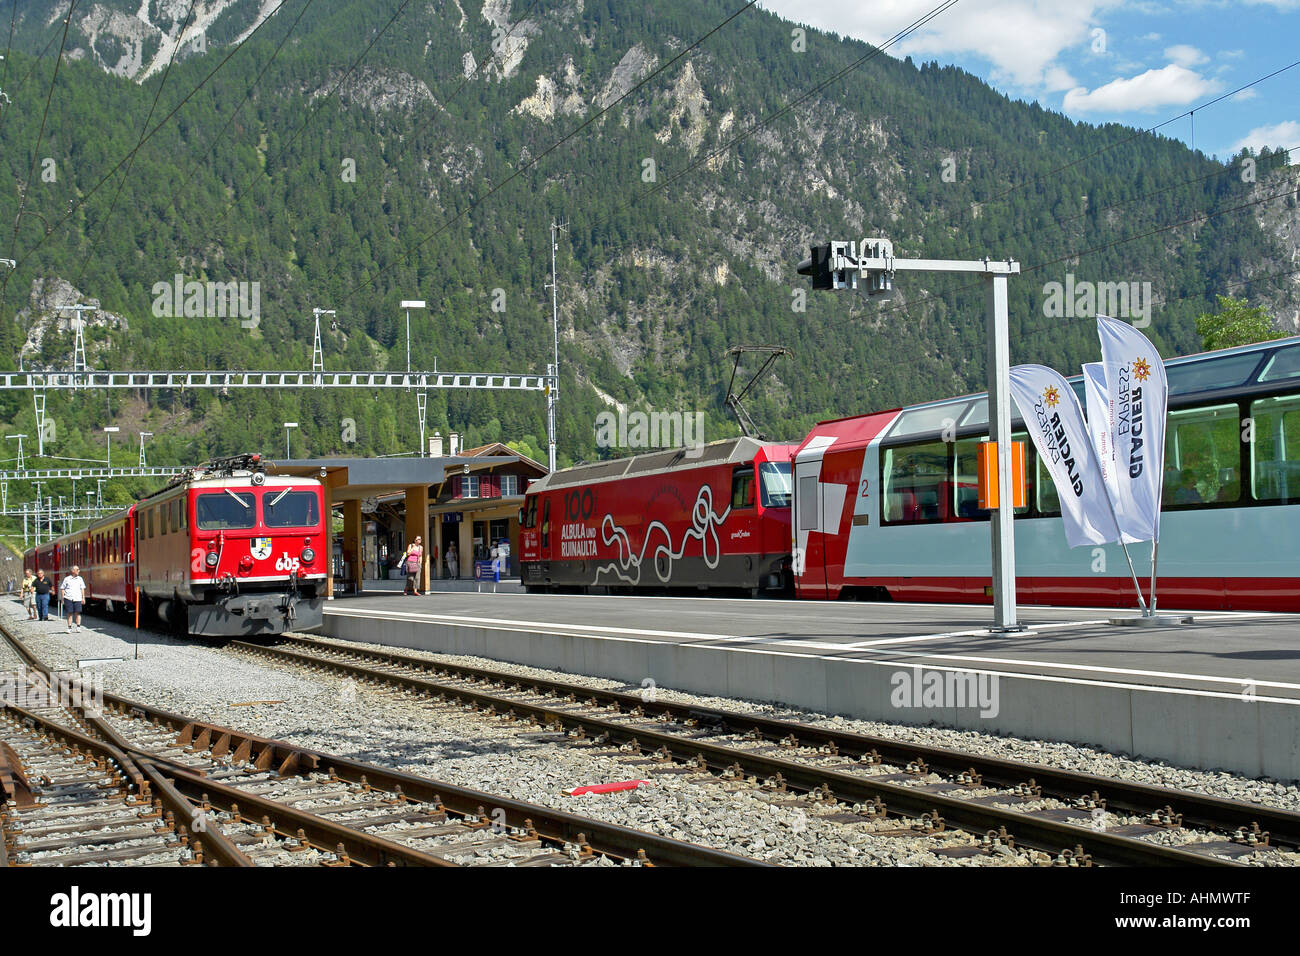 st moritz bound glacier express train meets chur bound rhatische stock photo royalty free. Black Bedroom Furniture Sets. Home Design Ideas